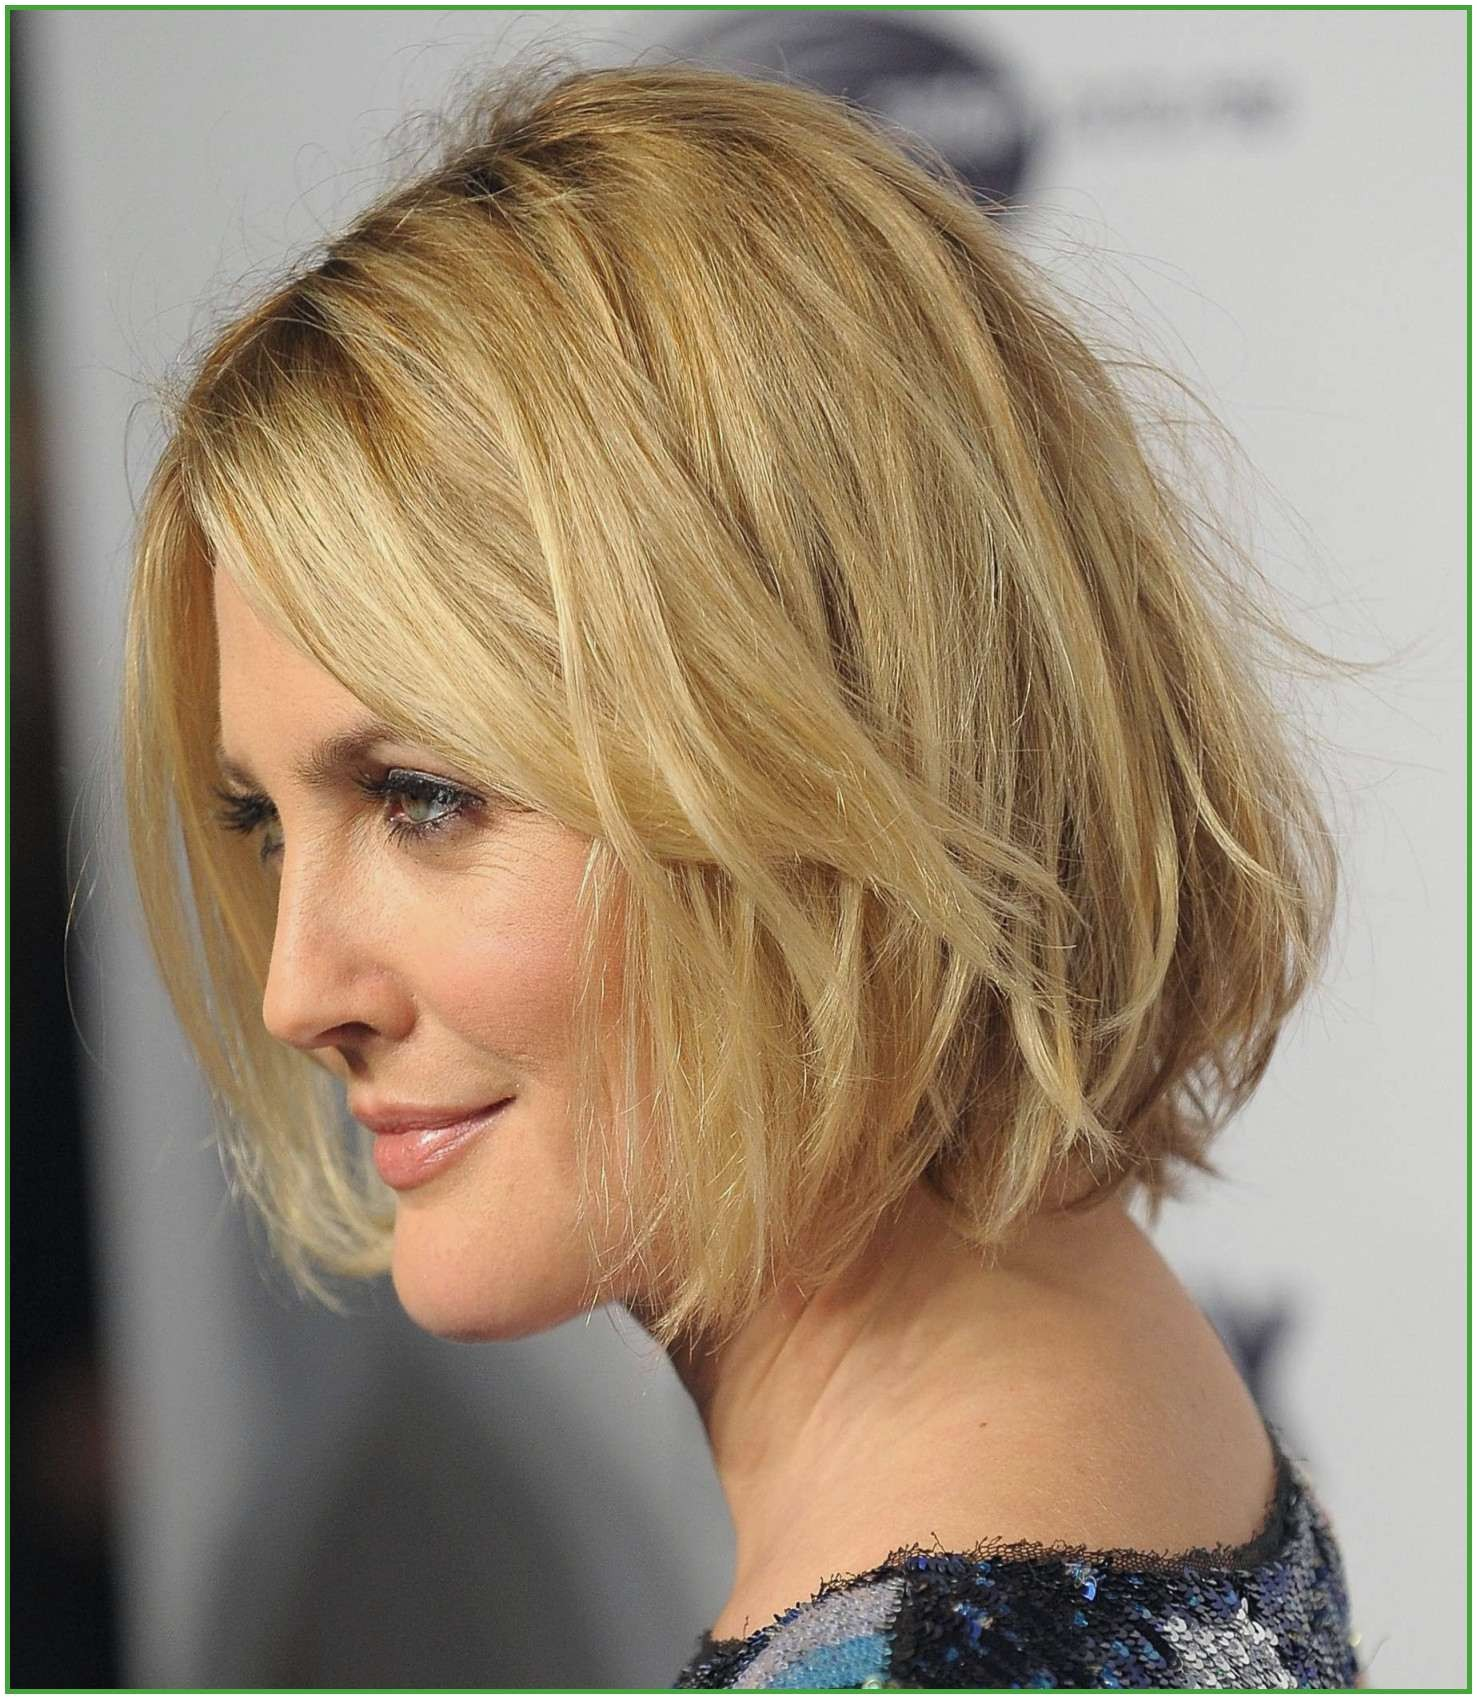 Images Of Short Hairstyles for Older Women Lovely Inspirational Short Hairstyles with Short Bangs and Layers